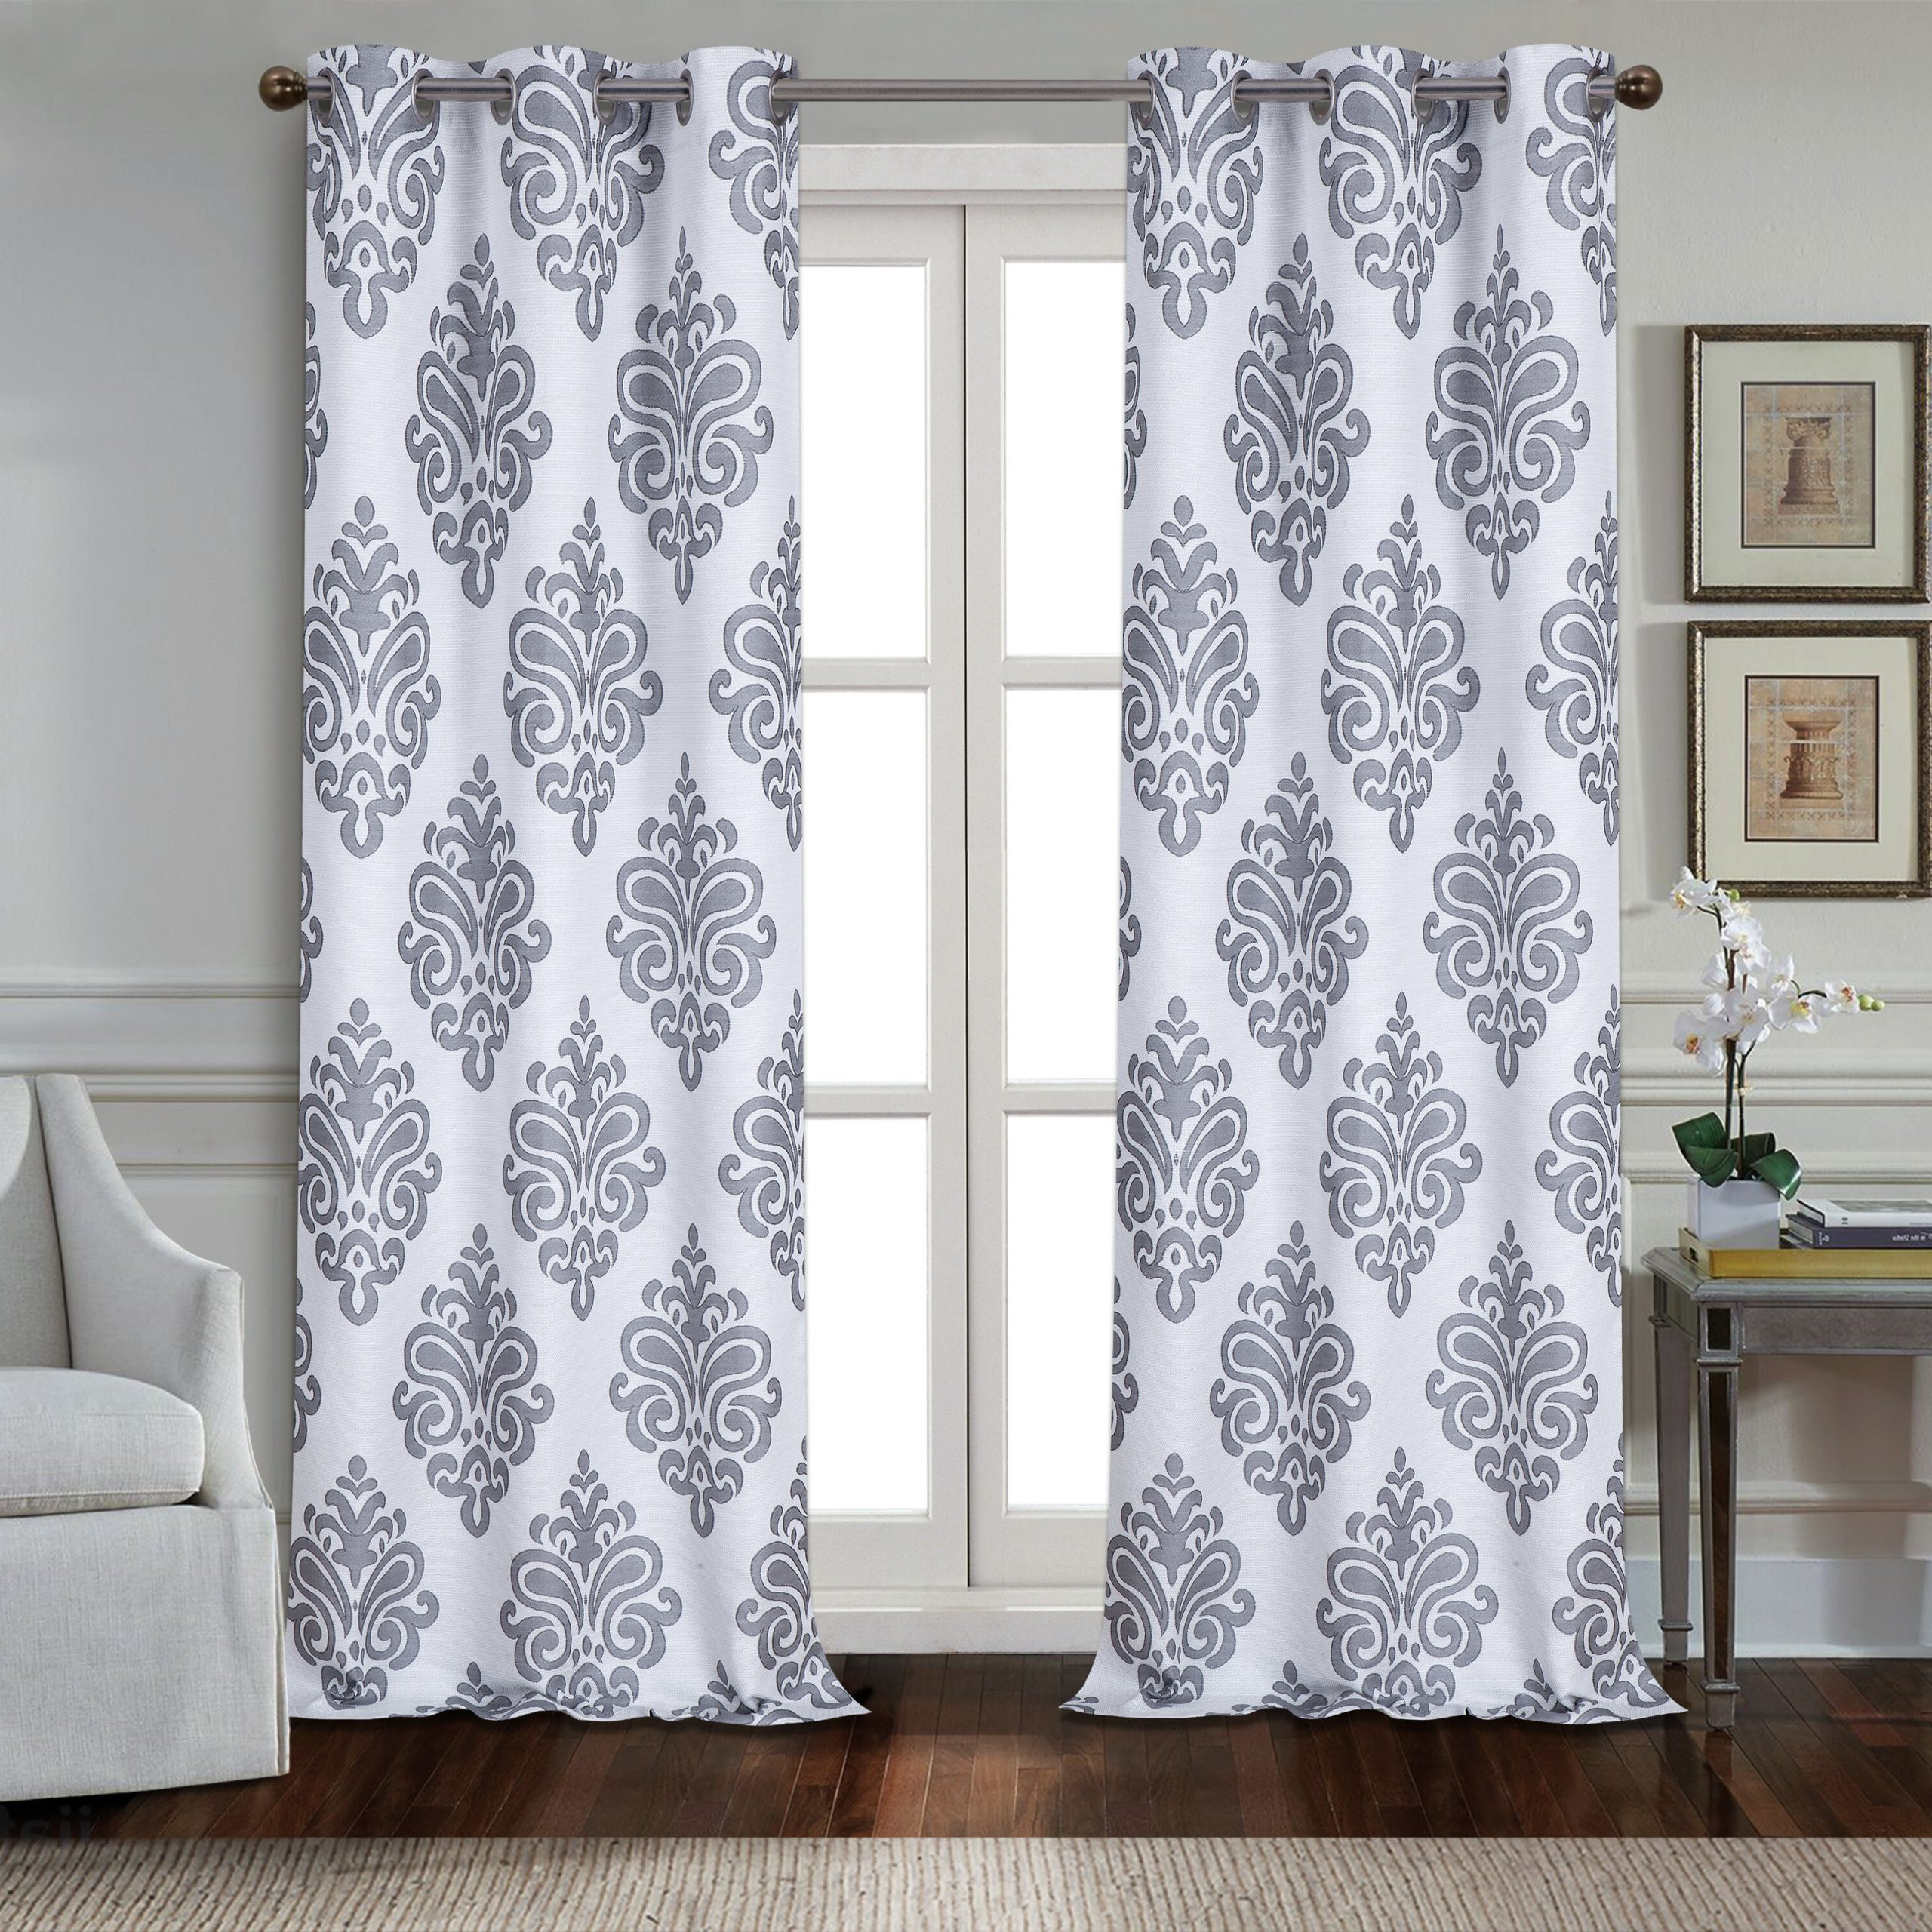 2021 Andorra Watercolor Floral Textured Sheer Single Curtain Panels With Regard To Cahawba Textured Appliqué Damask Room Darkening Grommet Panel Pair (View 1 of 20)